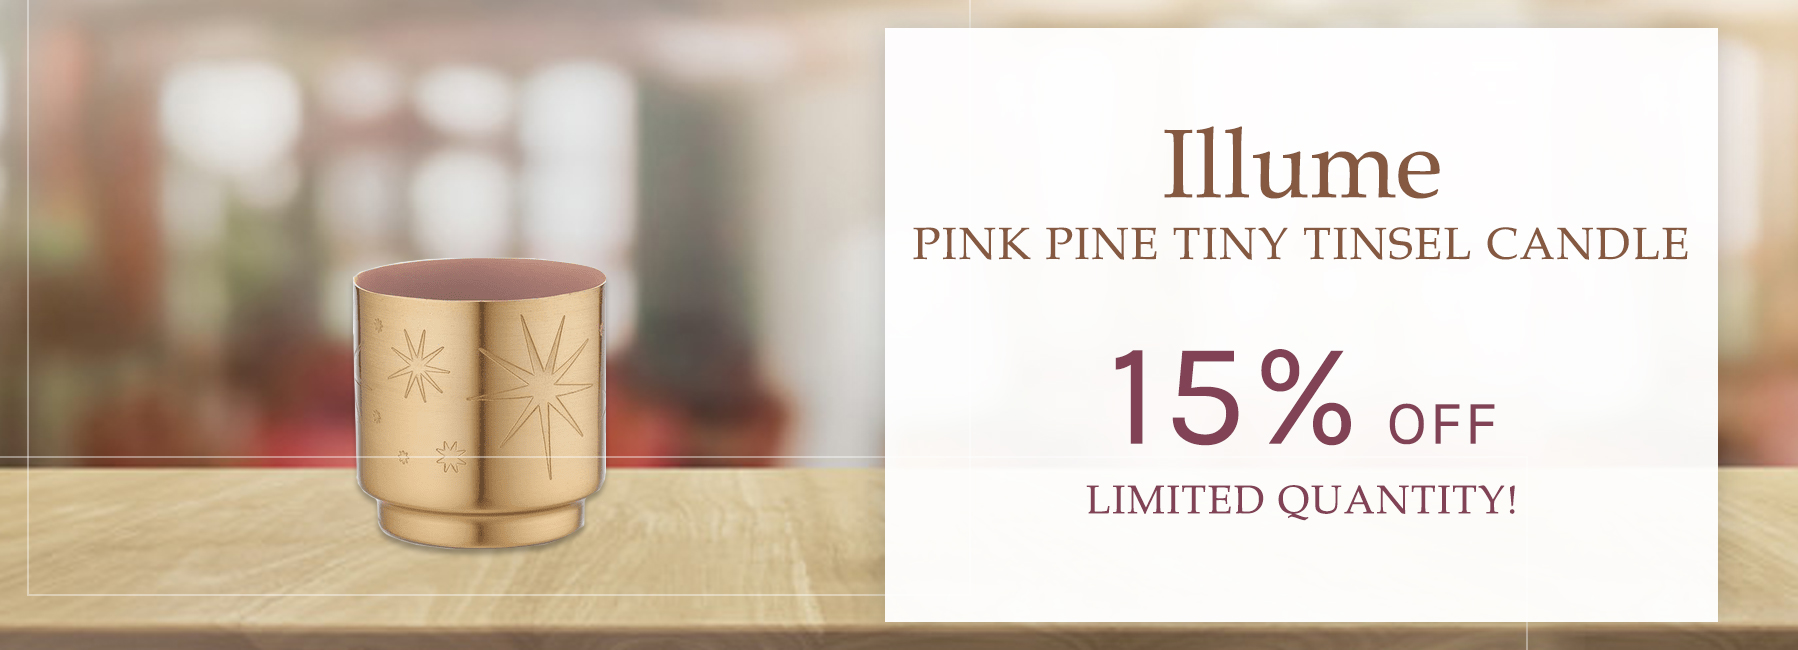 Illume - Pink Pine Tiny Tinsel Candle - 15 Percent OFF